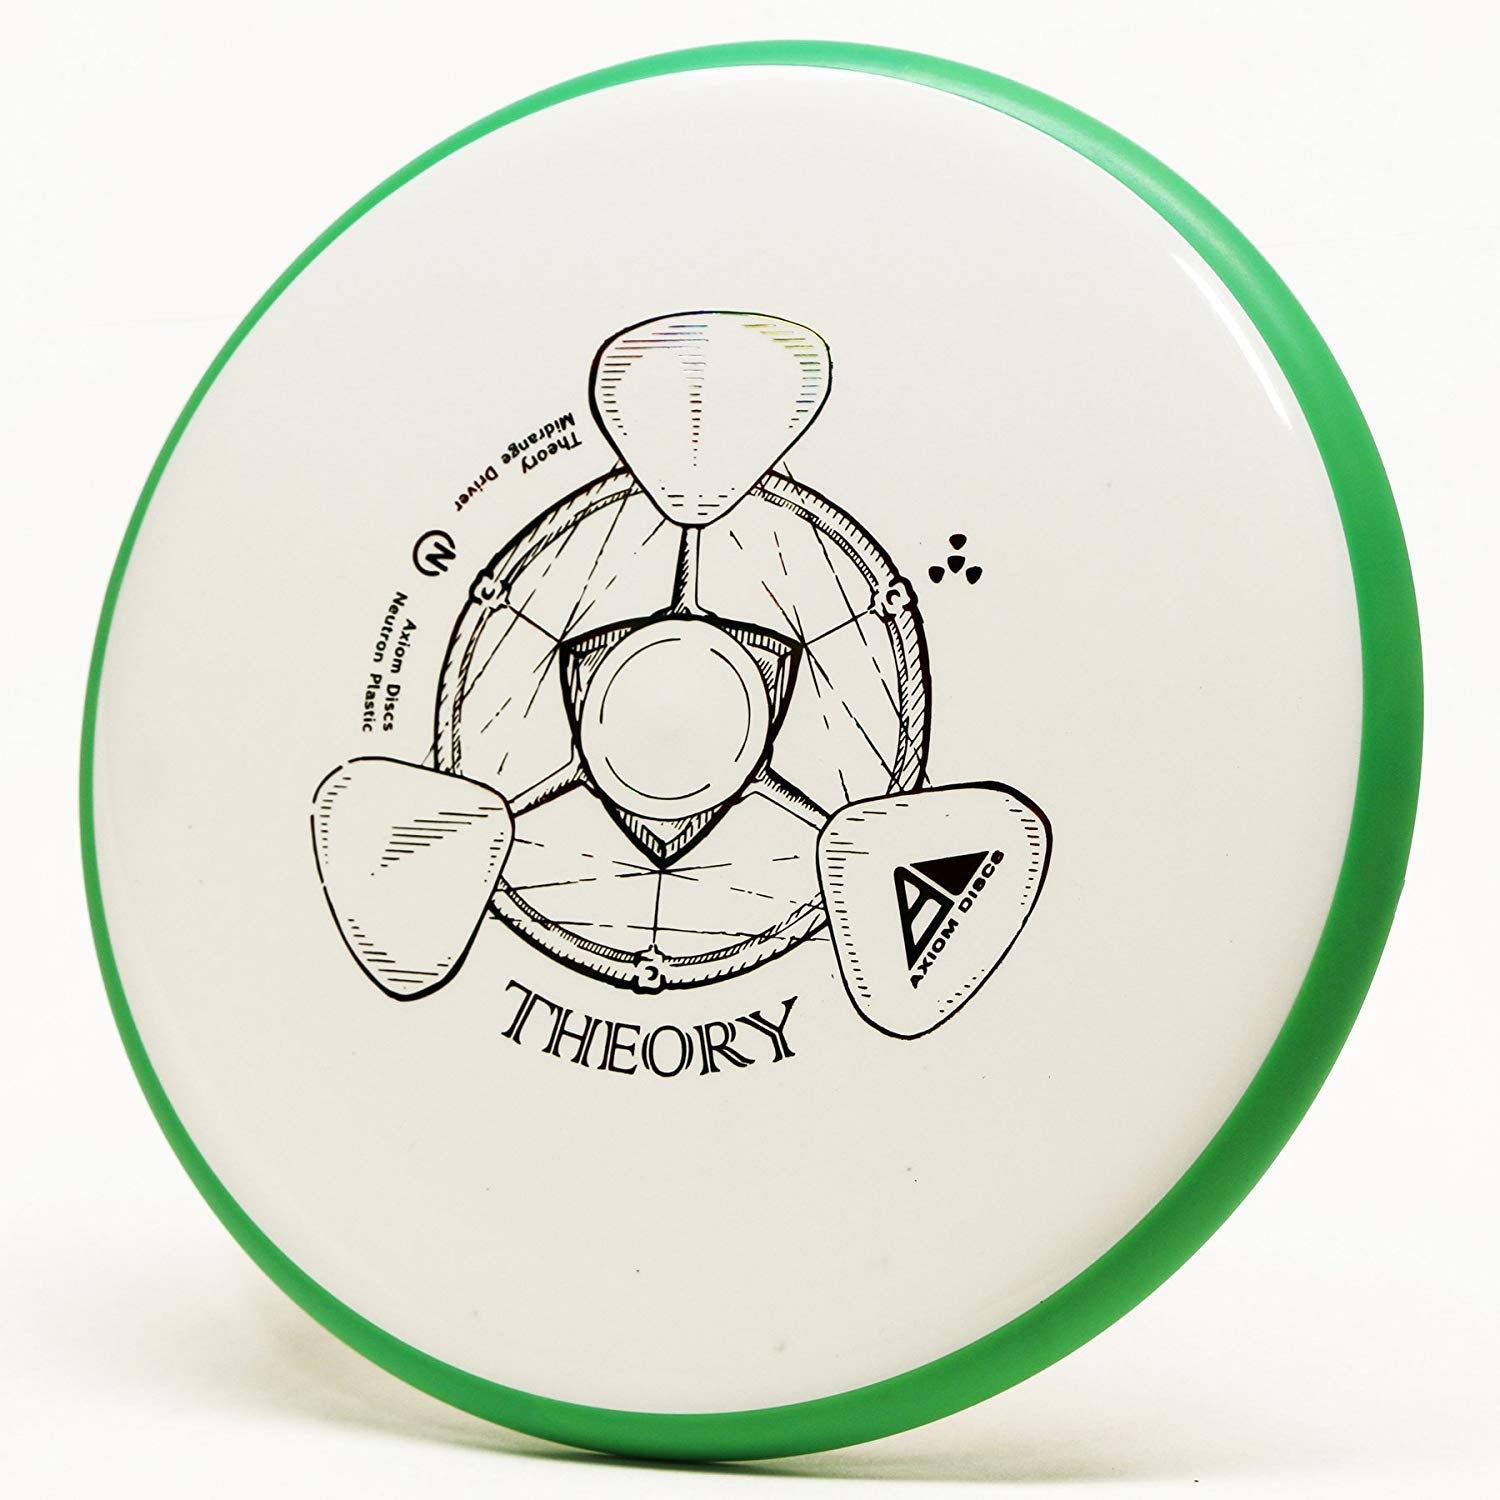 3.	AXIOM Disc Theory Golf Disc